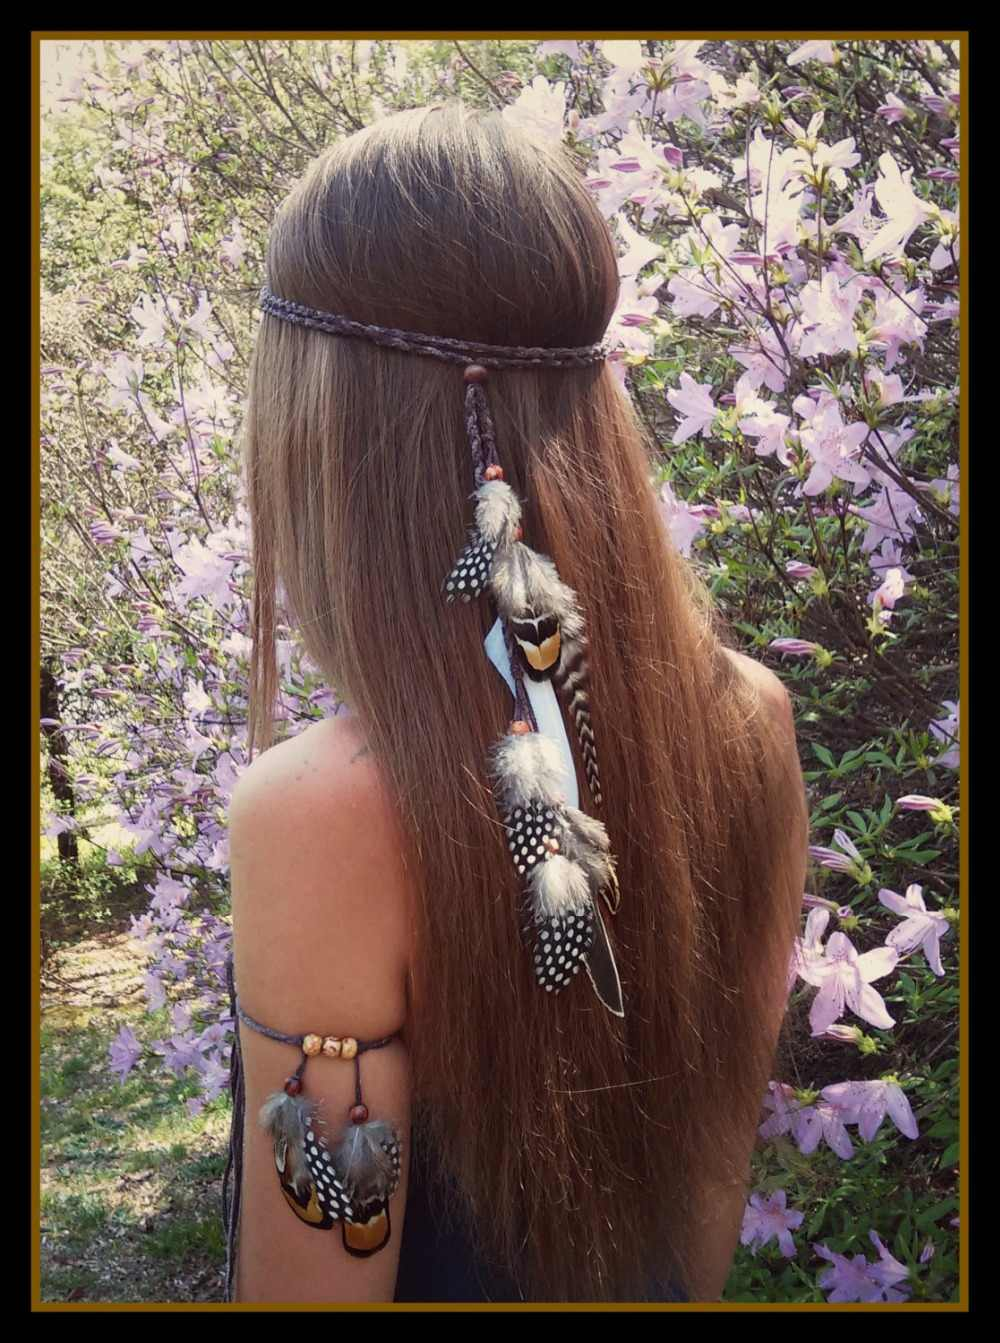 Indian Handmade Tribal Hair Feather Stone Rope Head pieces Gypsy Beautiful Boho Headband Hairband Armlet Hippie Jewelry Sets